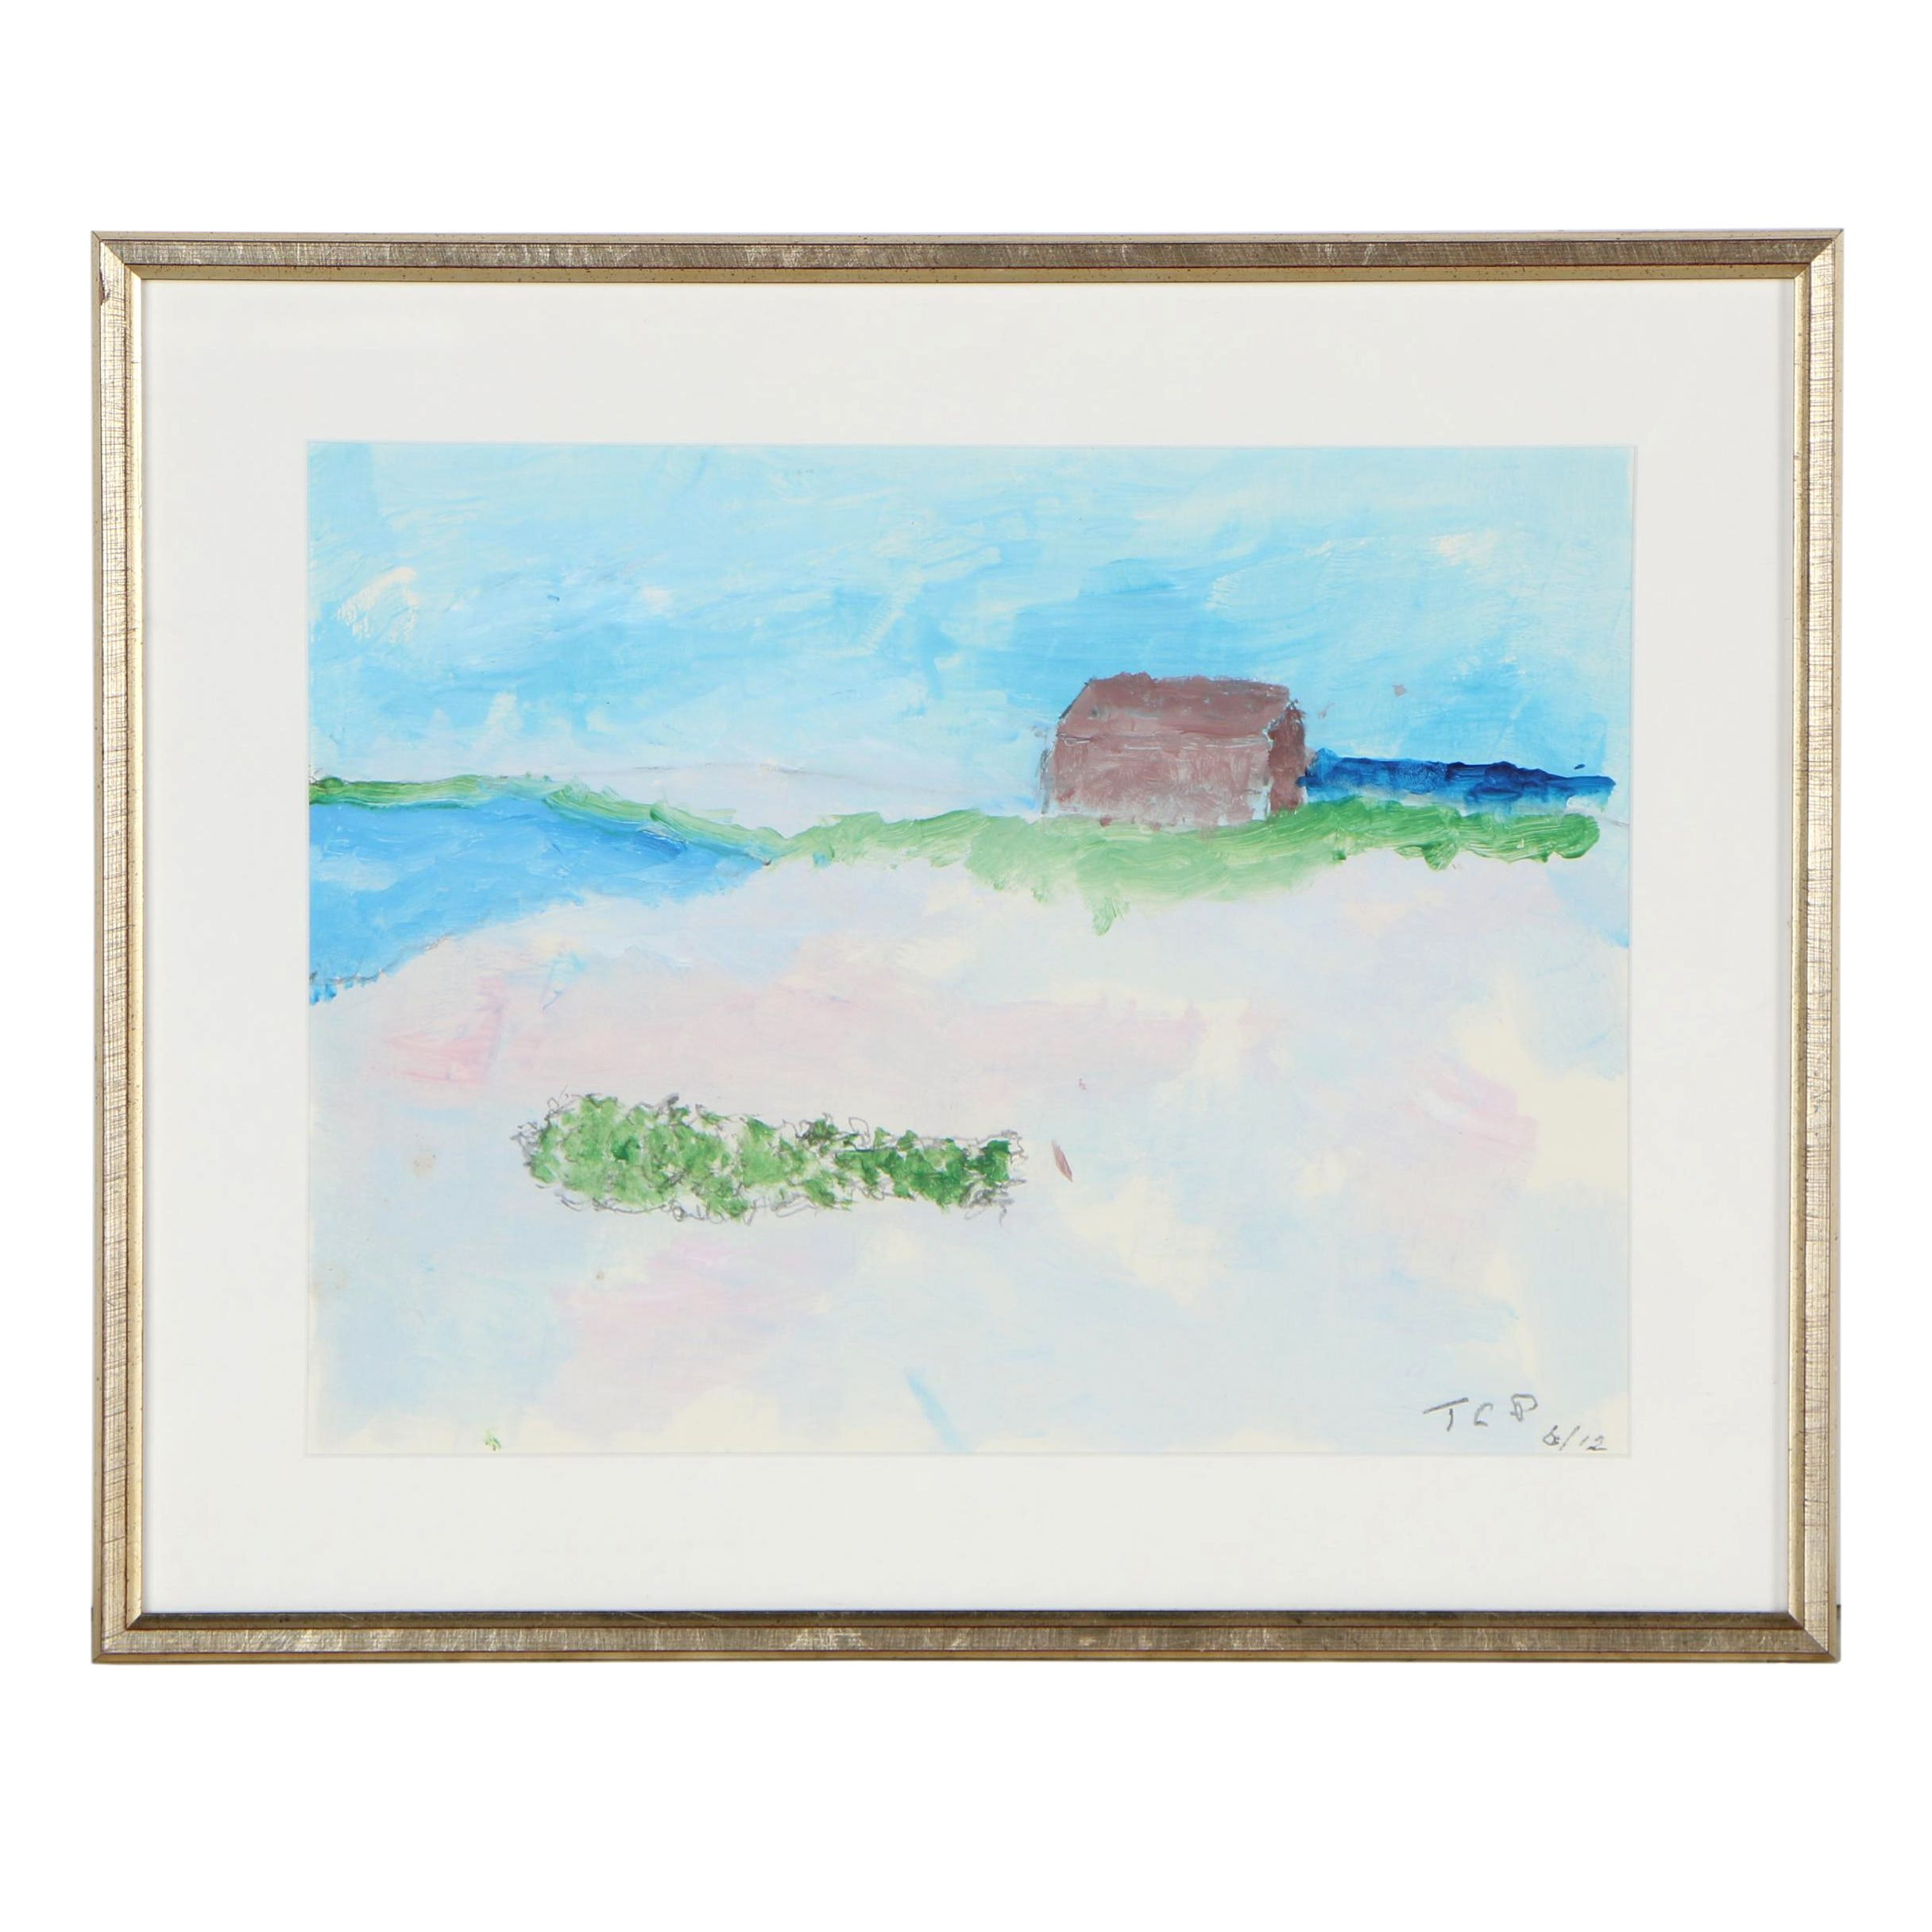 T.C.P. Acrylic Painting of a Seaside Landscape